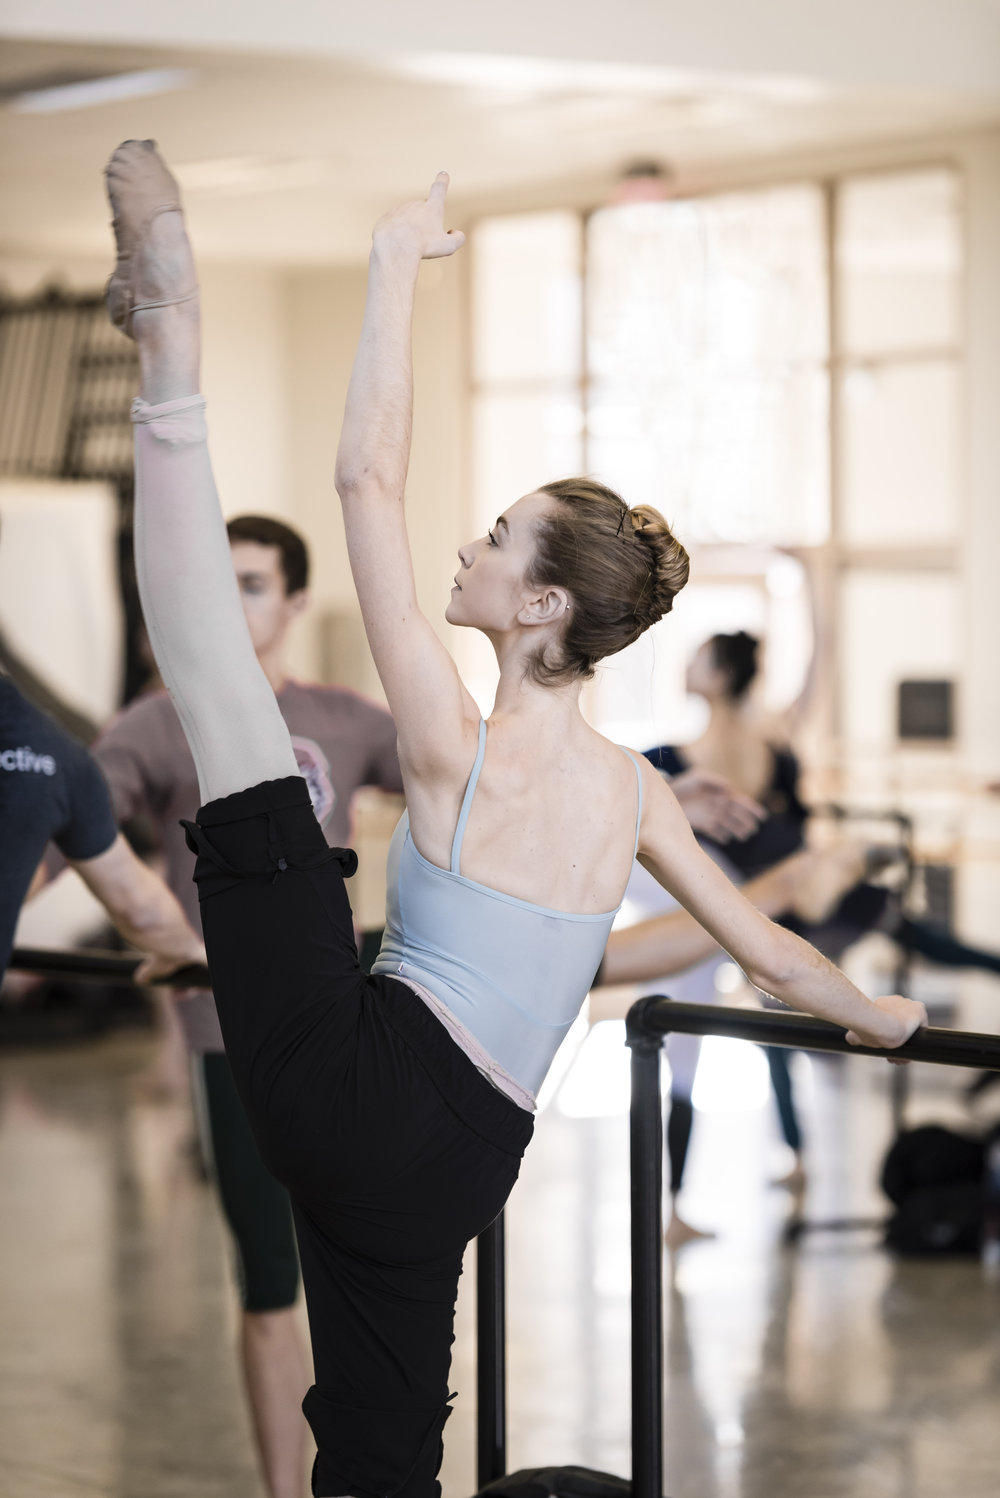 Addie Tapp by Liza Voll Photography, courtesy Boston Ballet